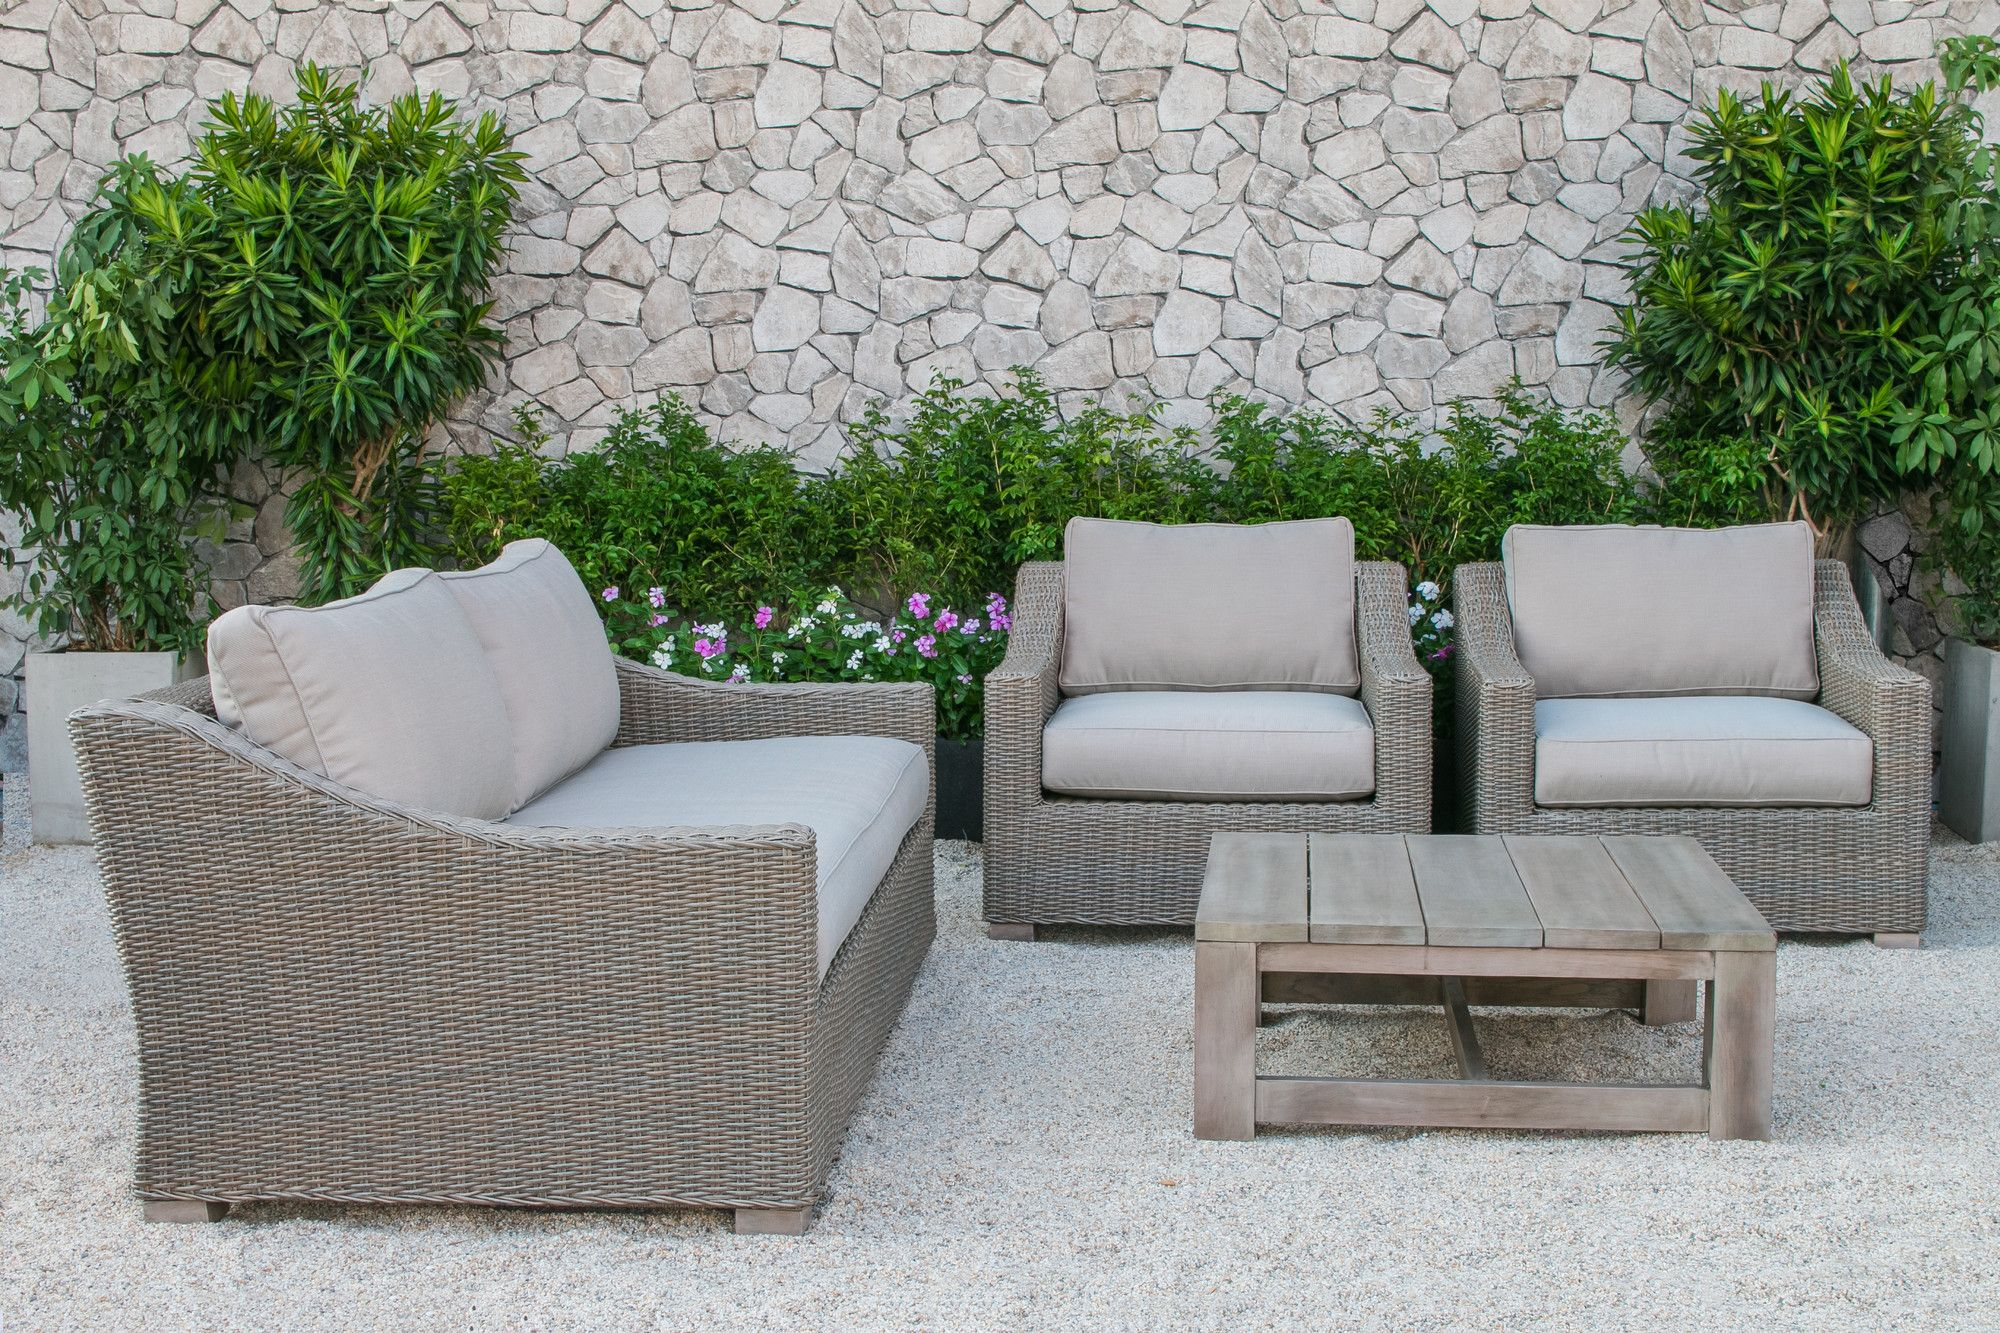 Mound Outdoor Wicker 4 Piece Deep Seating Group with Cushion